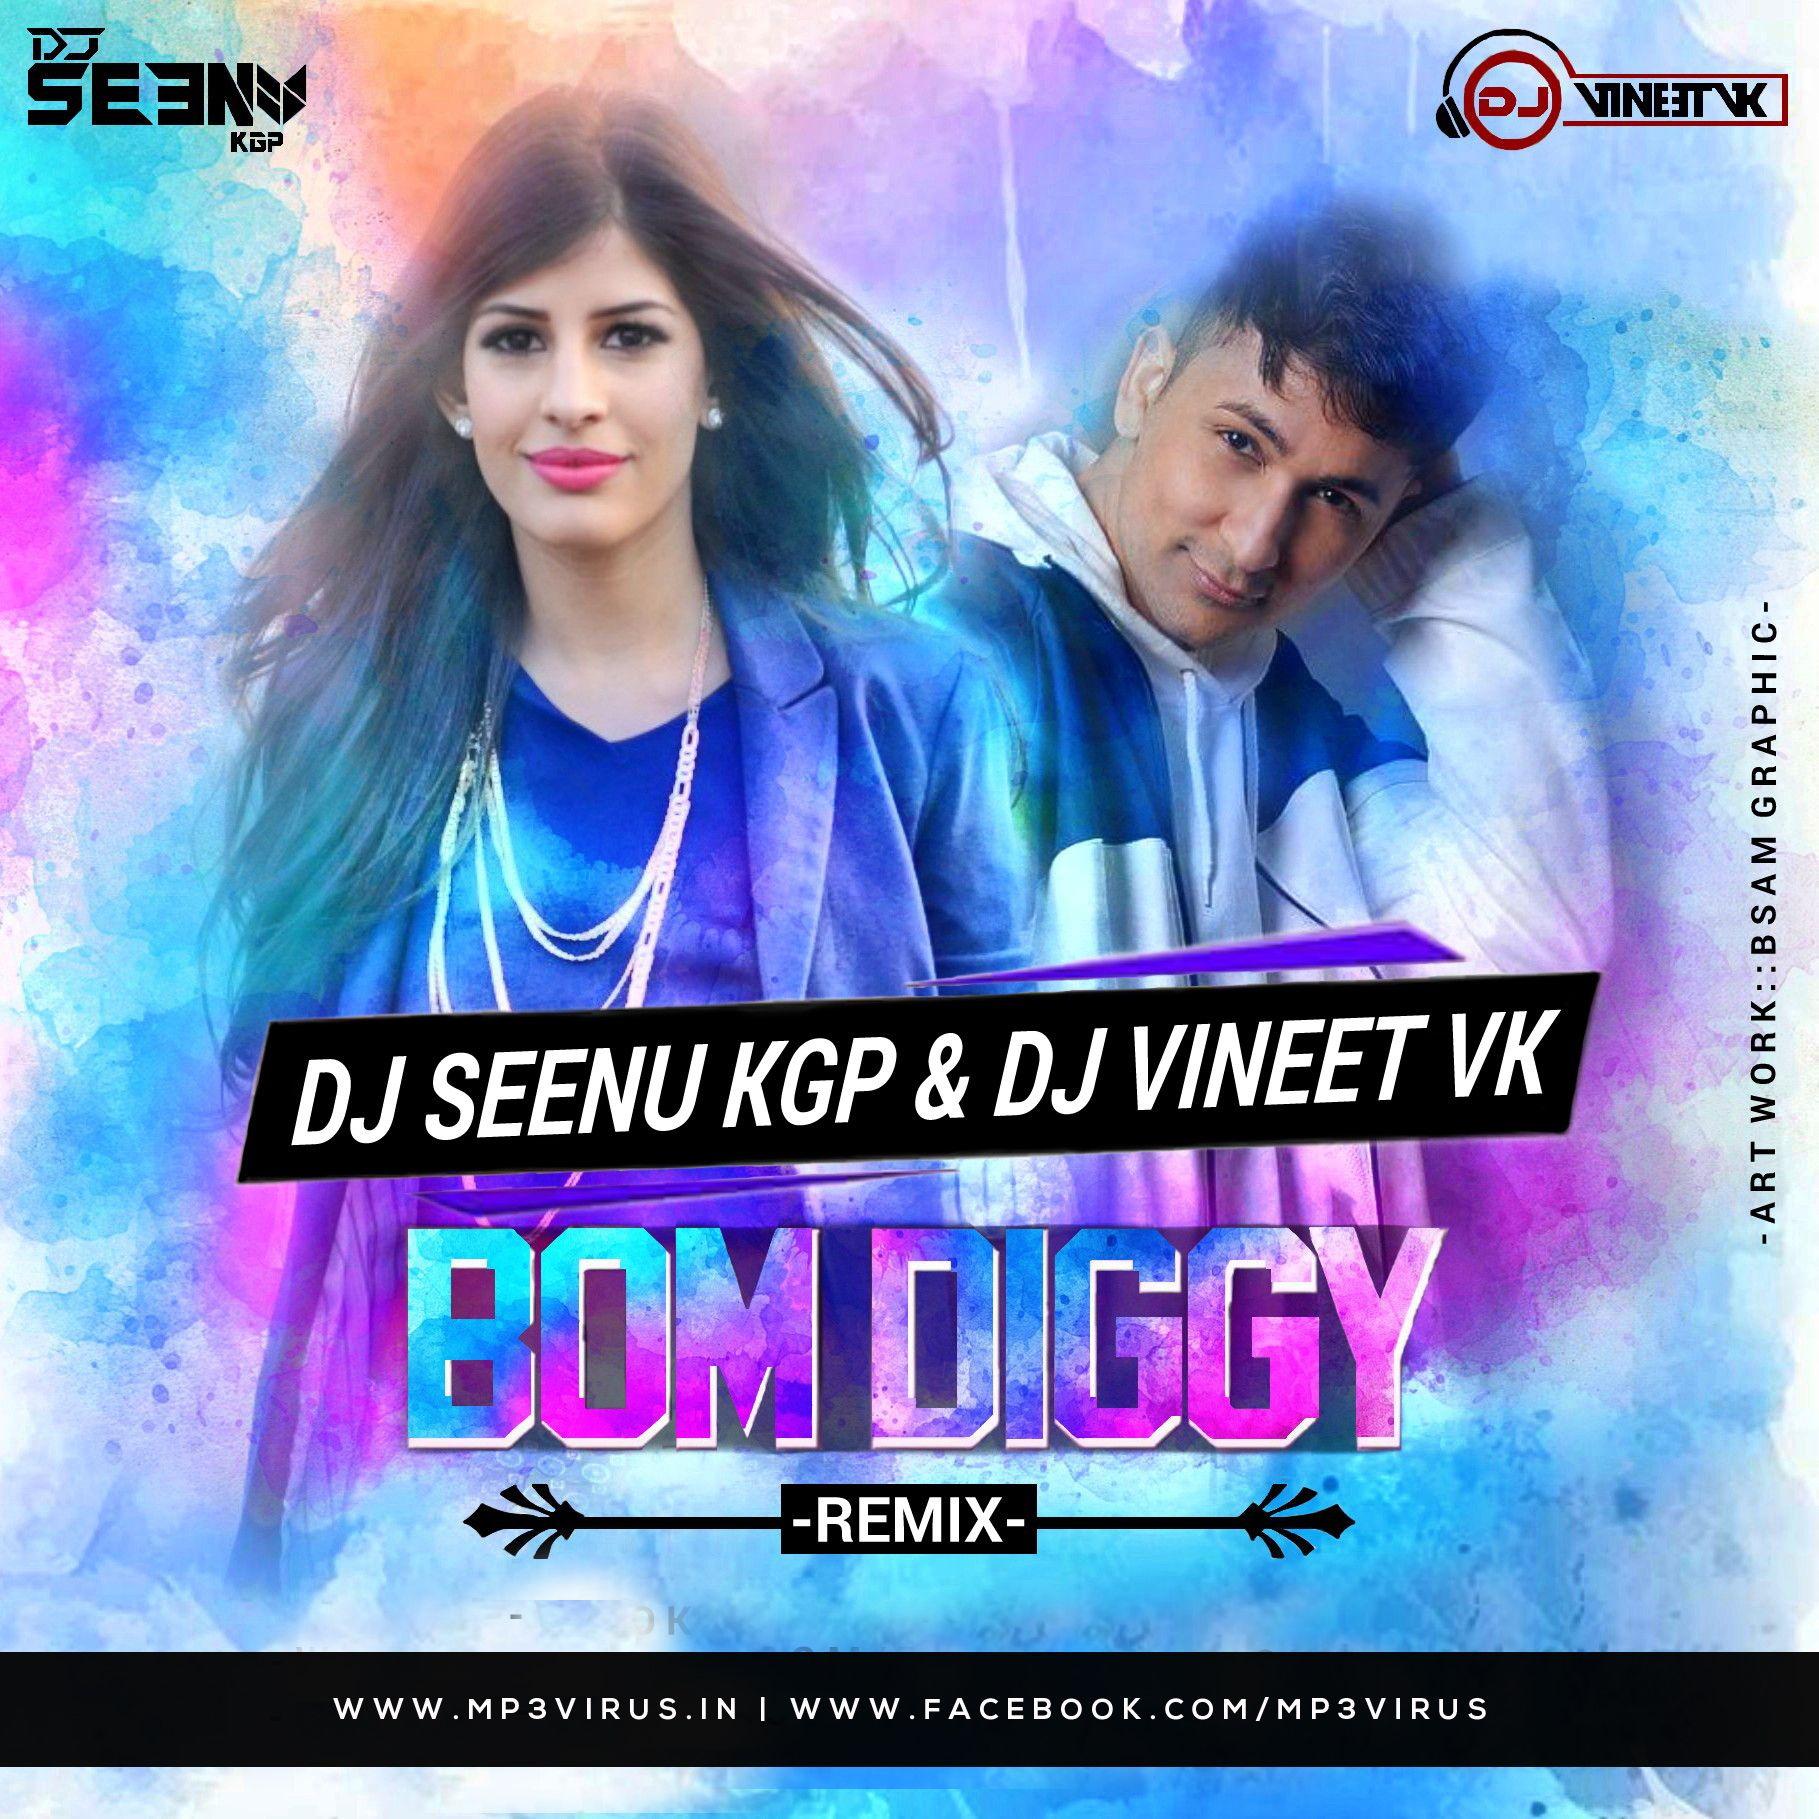 Bom diggy song download mp3 dj